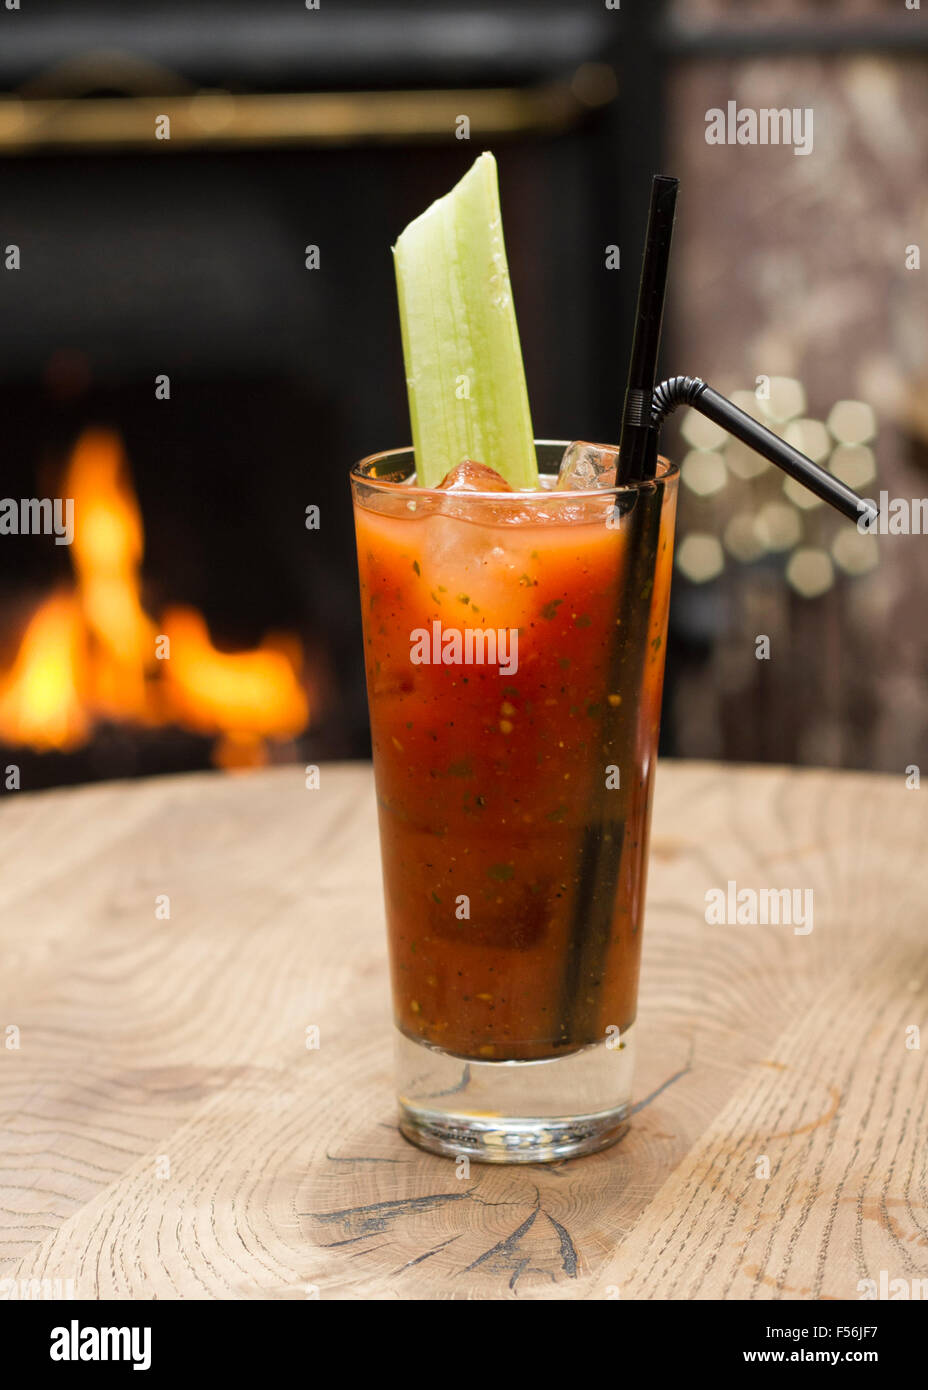 Bloody Mary Cocktail with a celery stick in front of a fire place - Stock Image